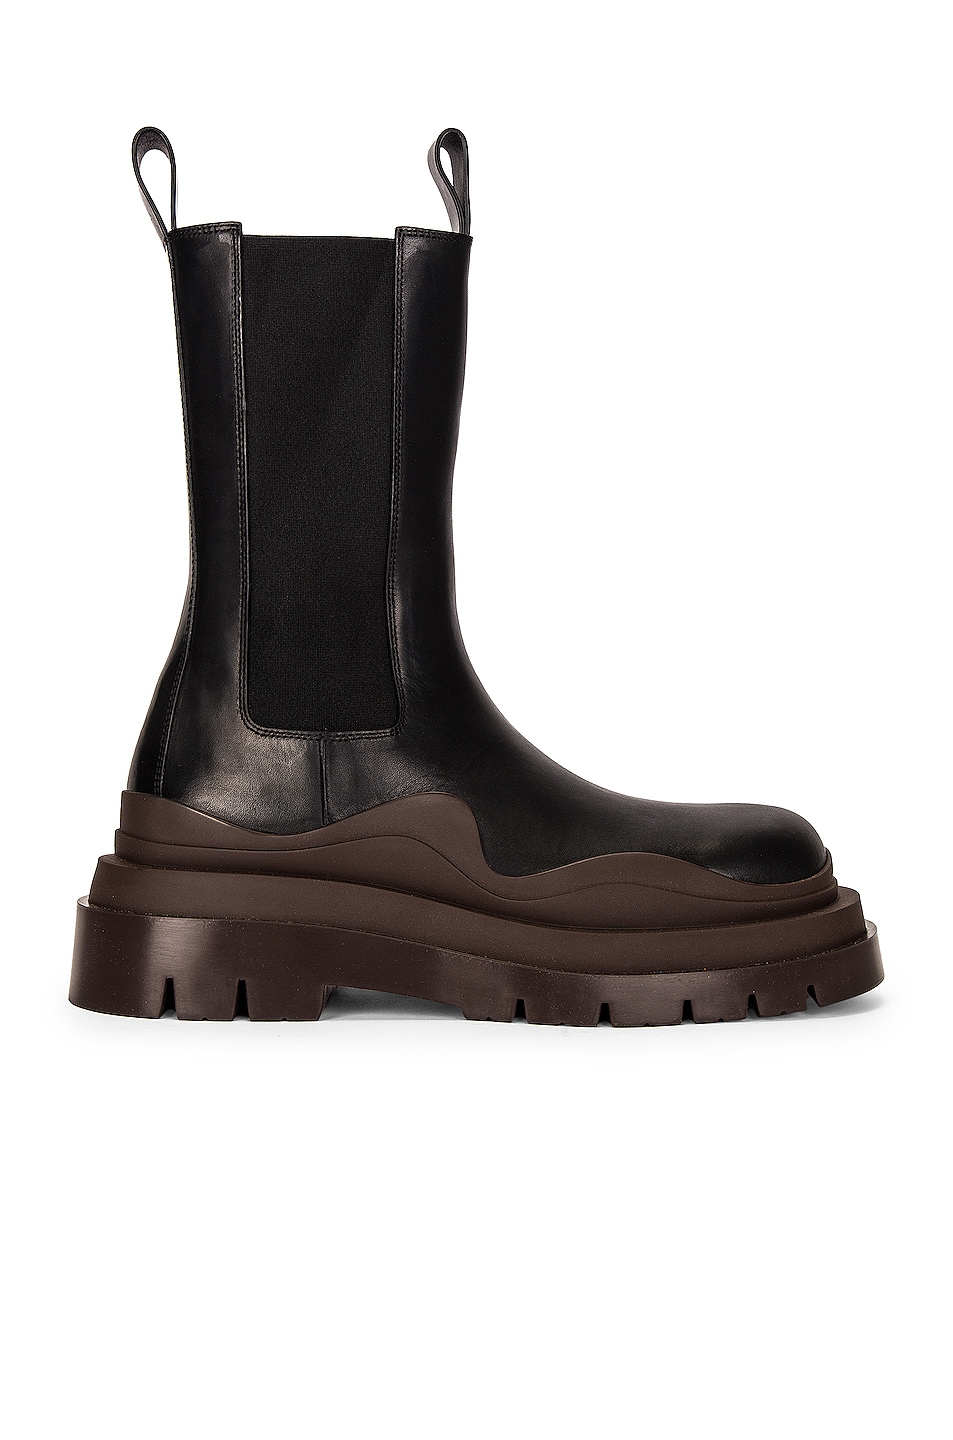 Image 1 of Bottega Veneta BV Tire Boots in Black & Brown